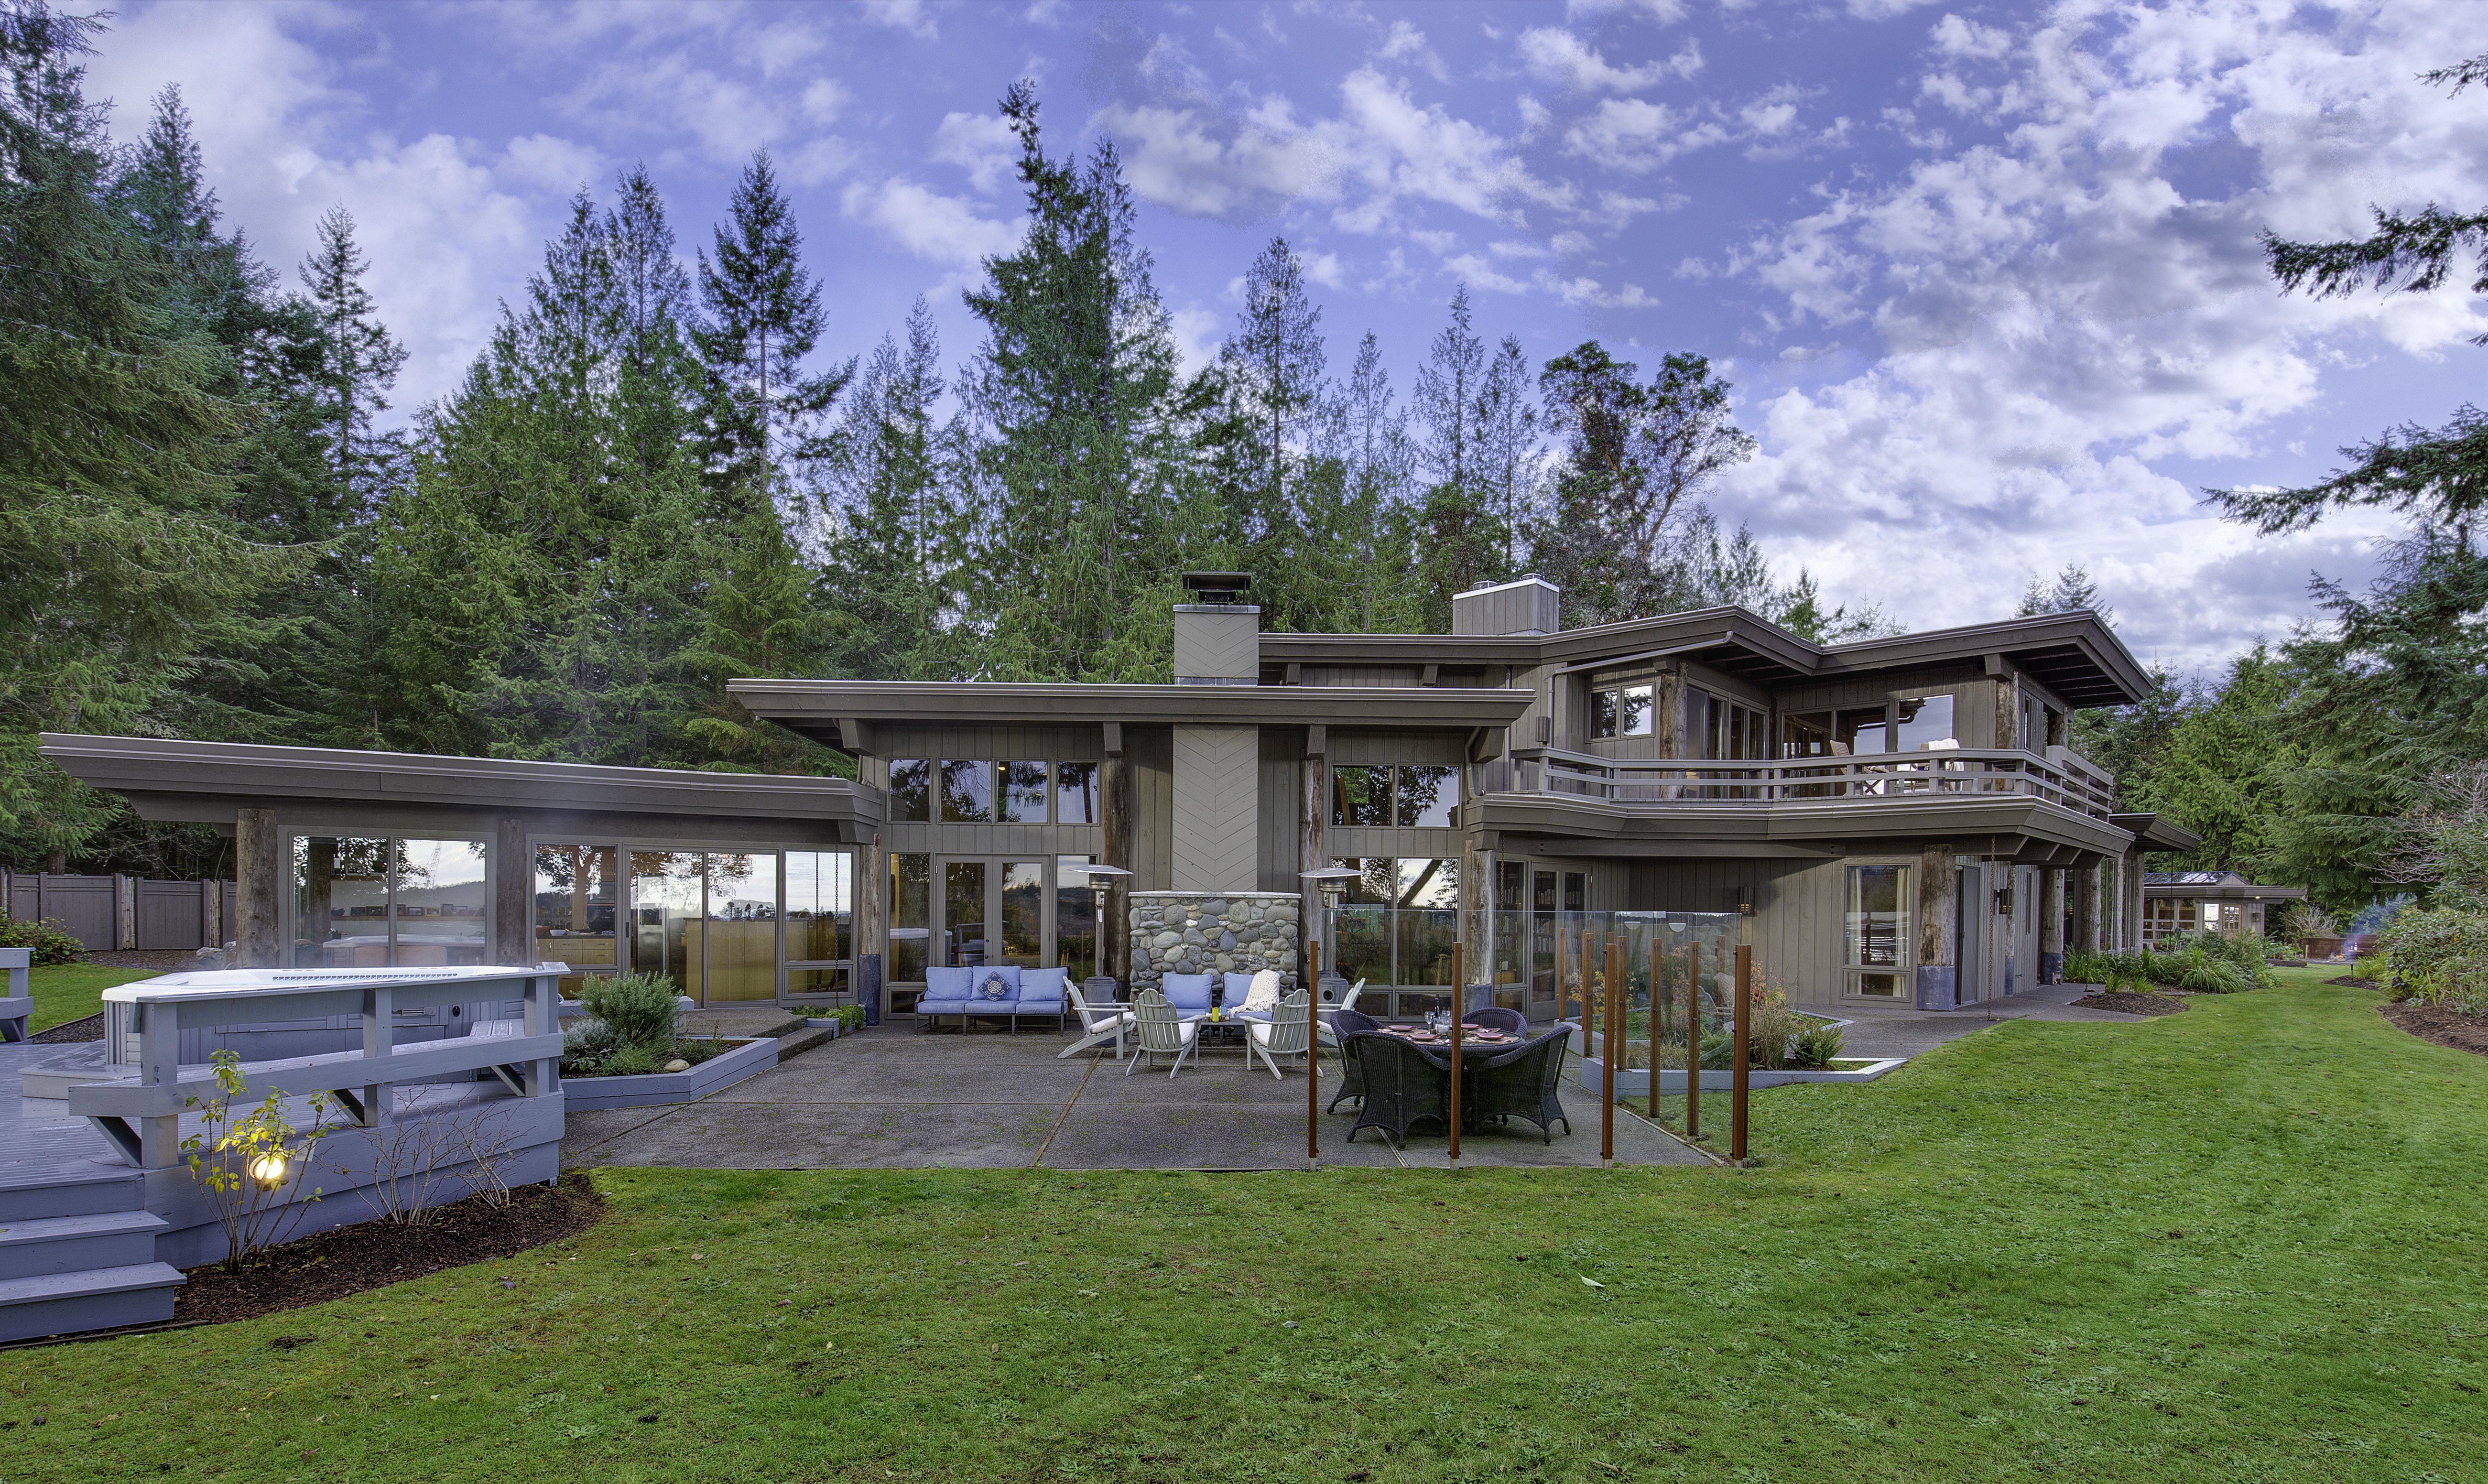 Single Family Home for Sale at Elwha River Retreat 494 Hunt Road Port Angeles, Washington 98363 United States